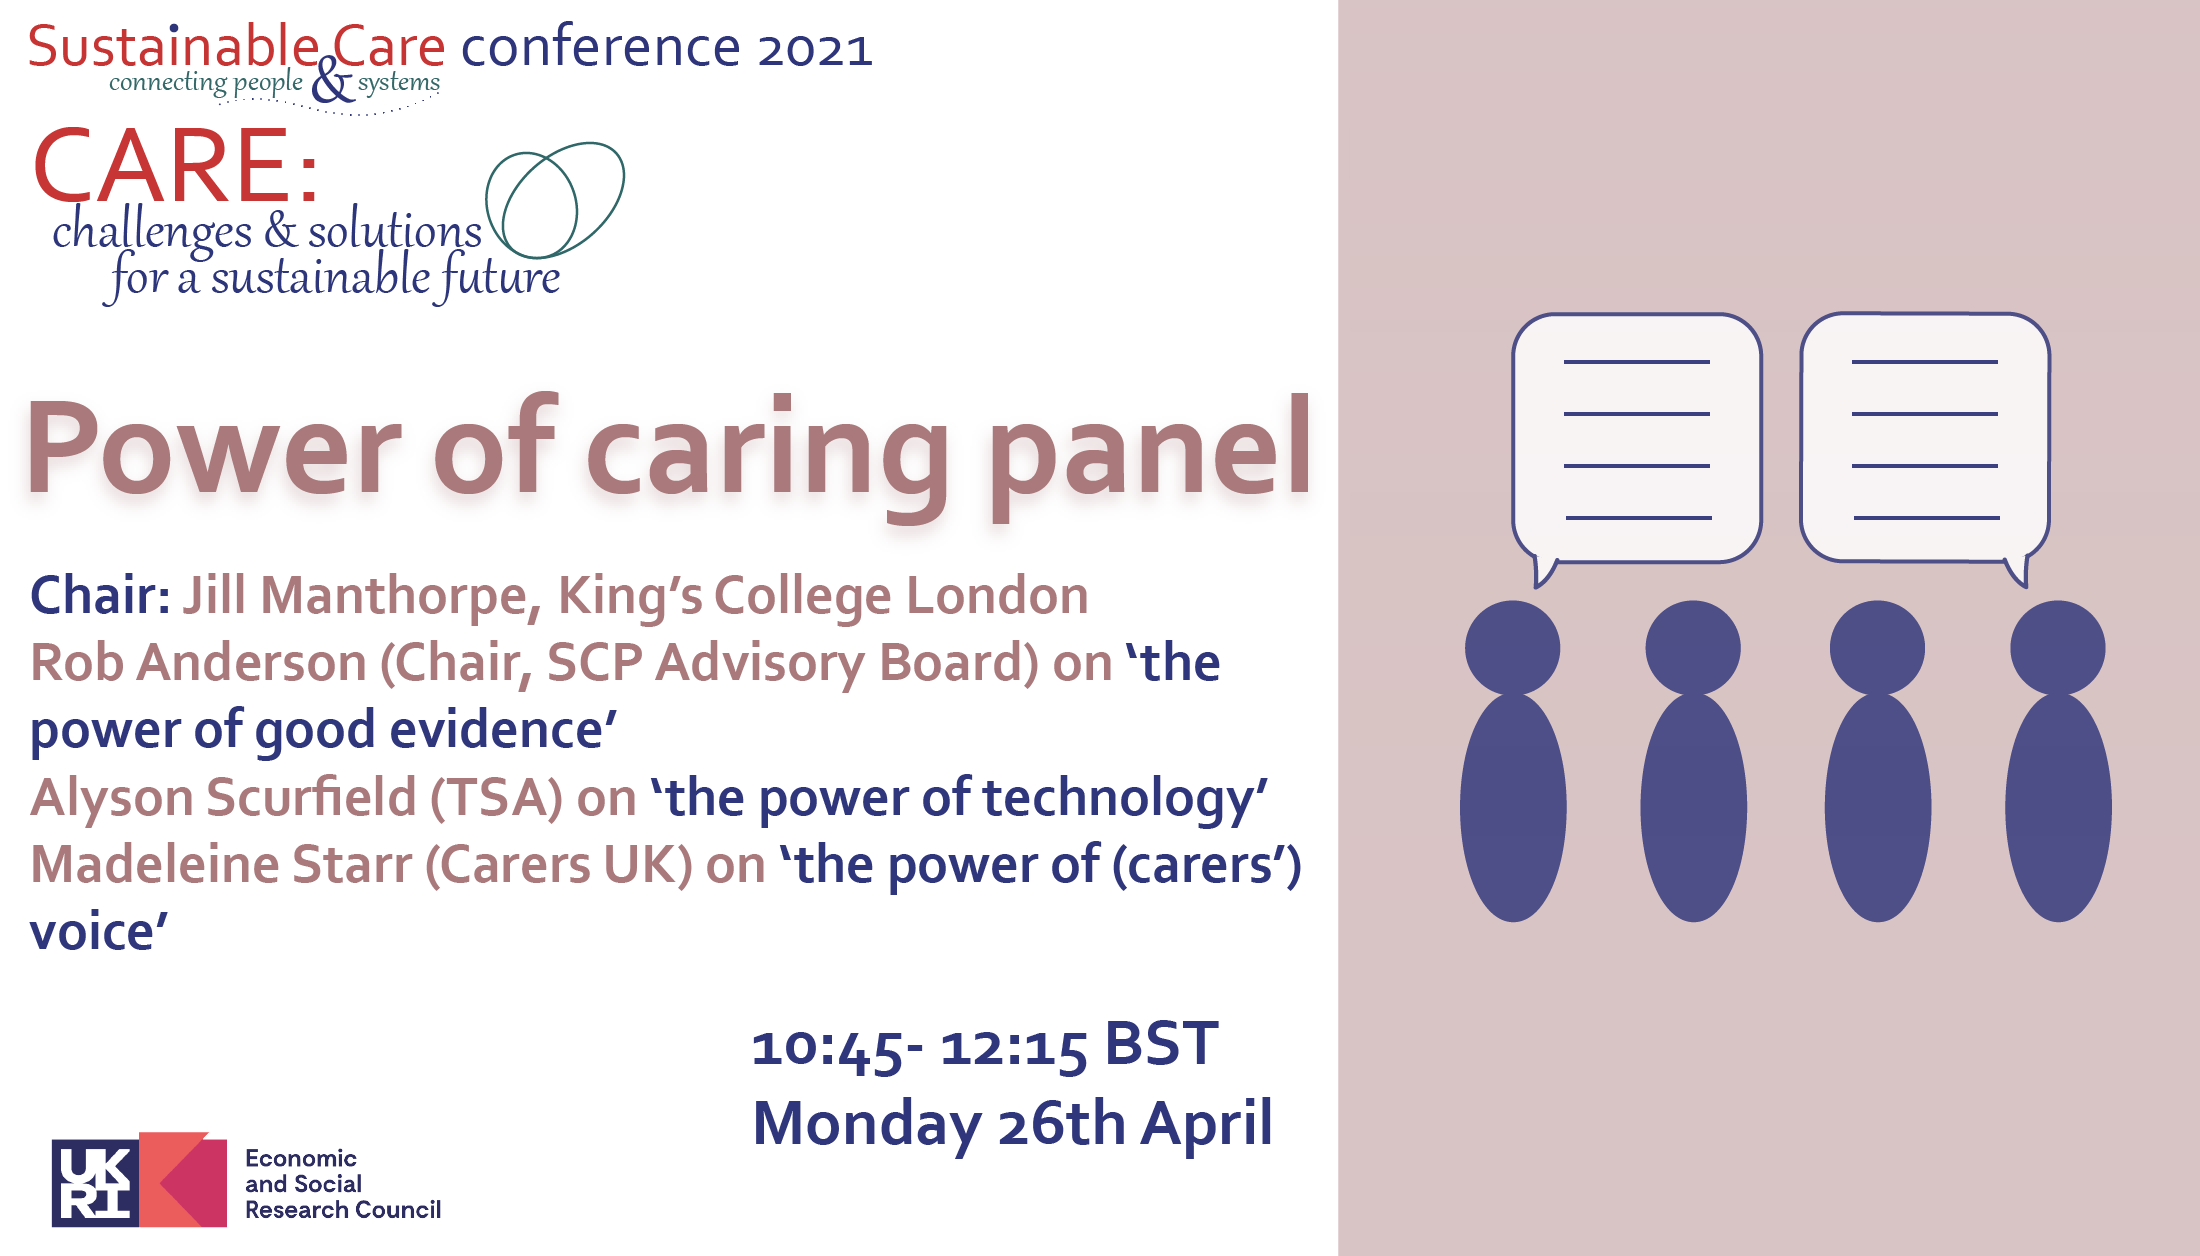 Power of caring panel Monday 26th April 10:45- 12:15 BST